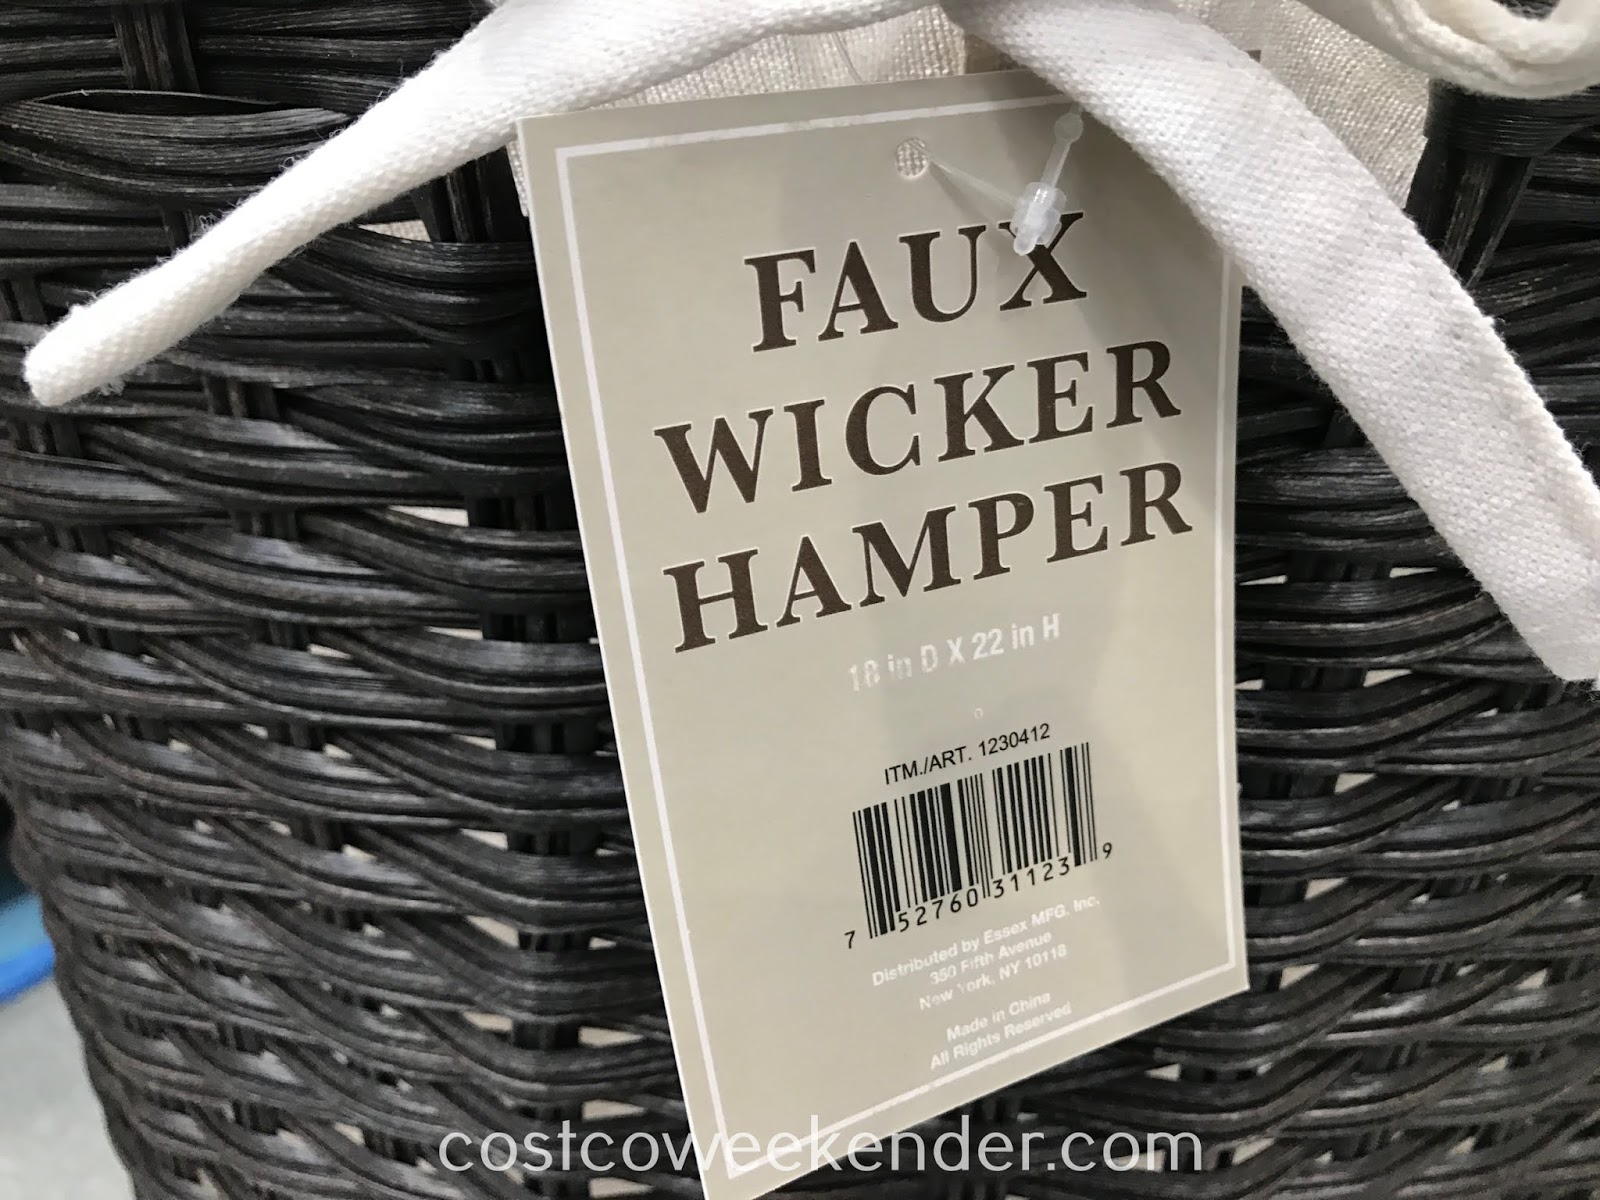 Baum Faux Wicker Hamper: great for any bedroom or bathroom